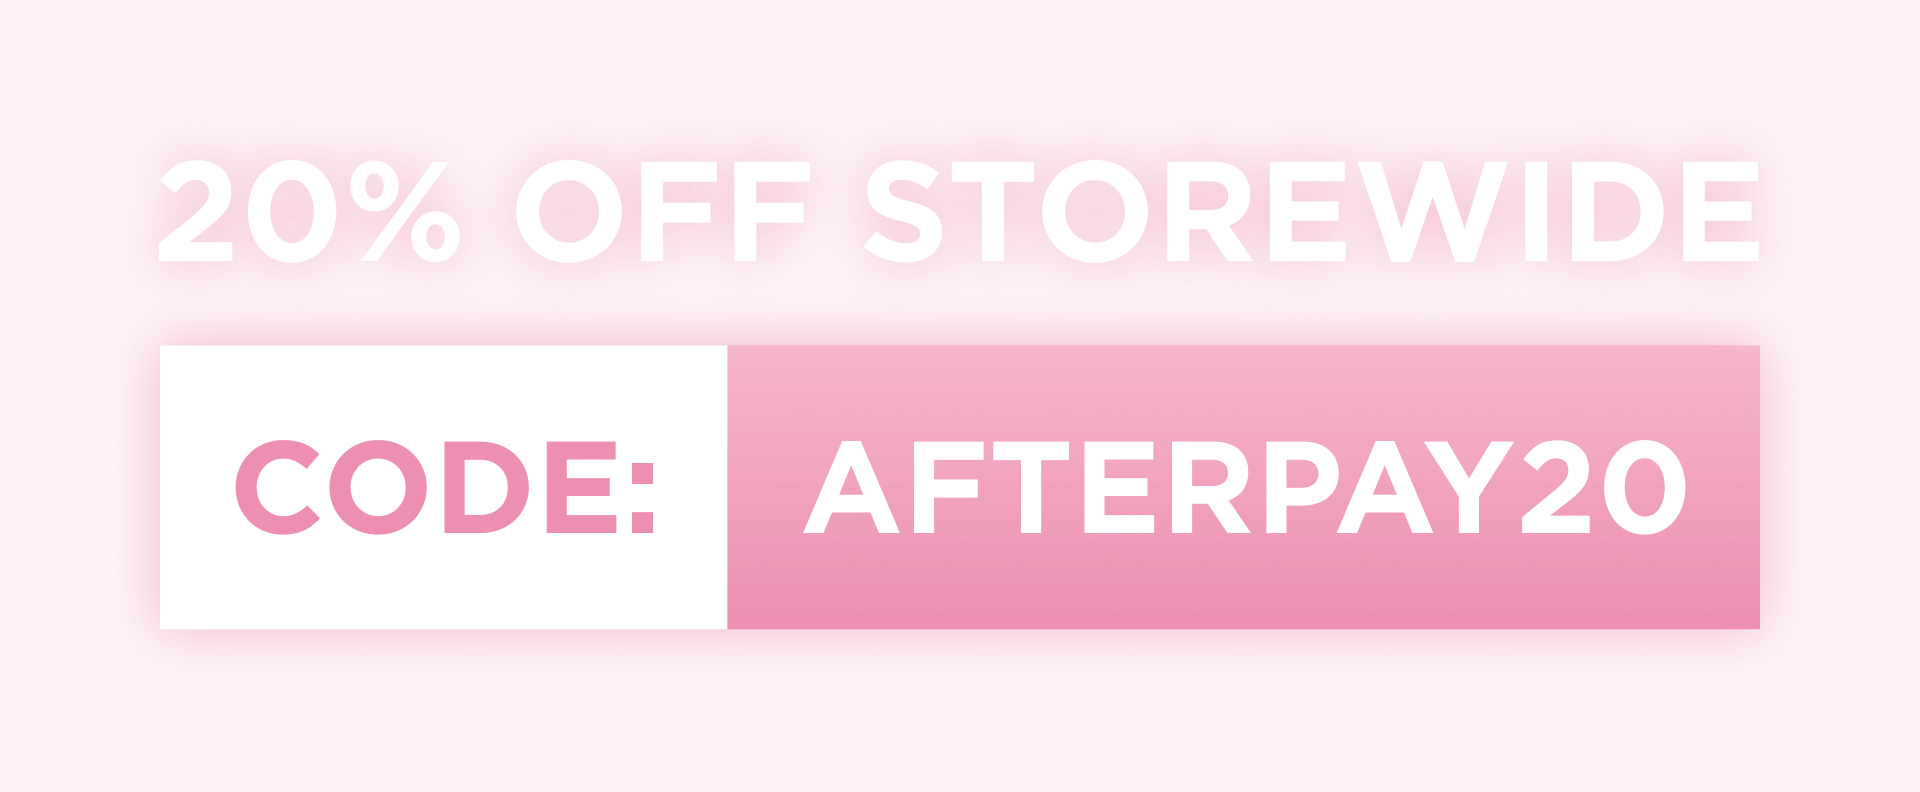 20% off storewide. code: afterpay20